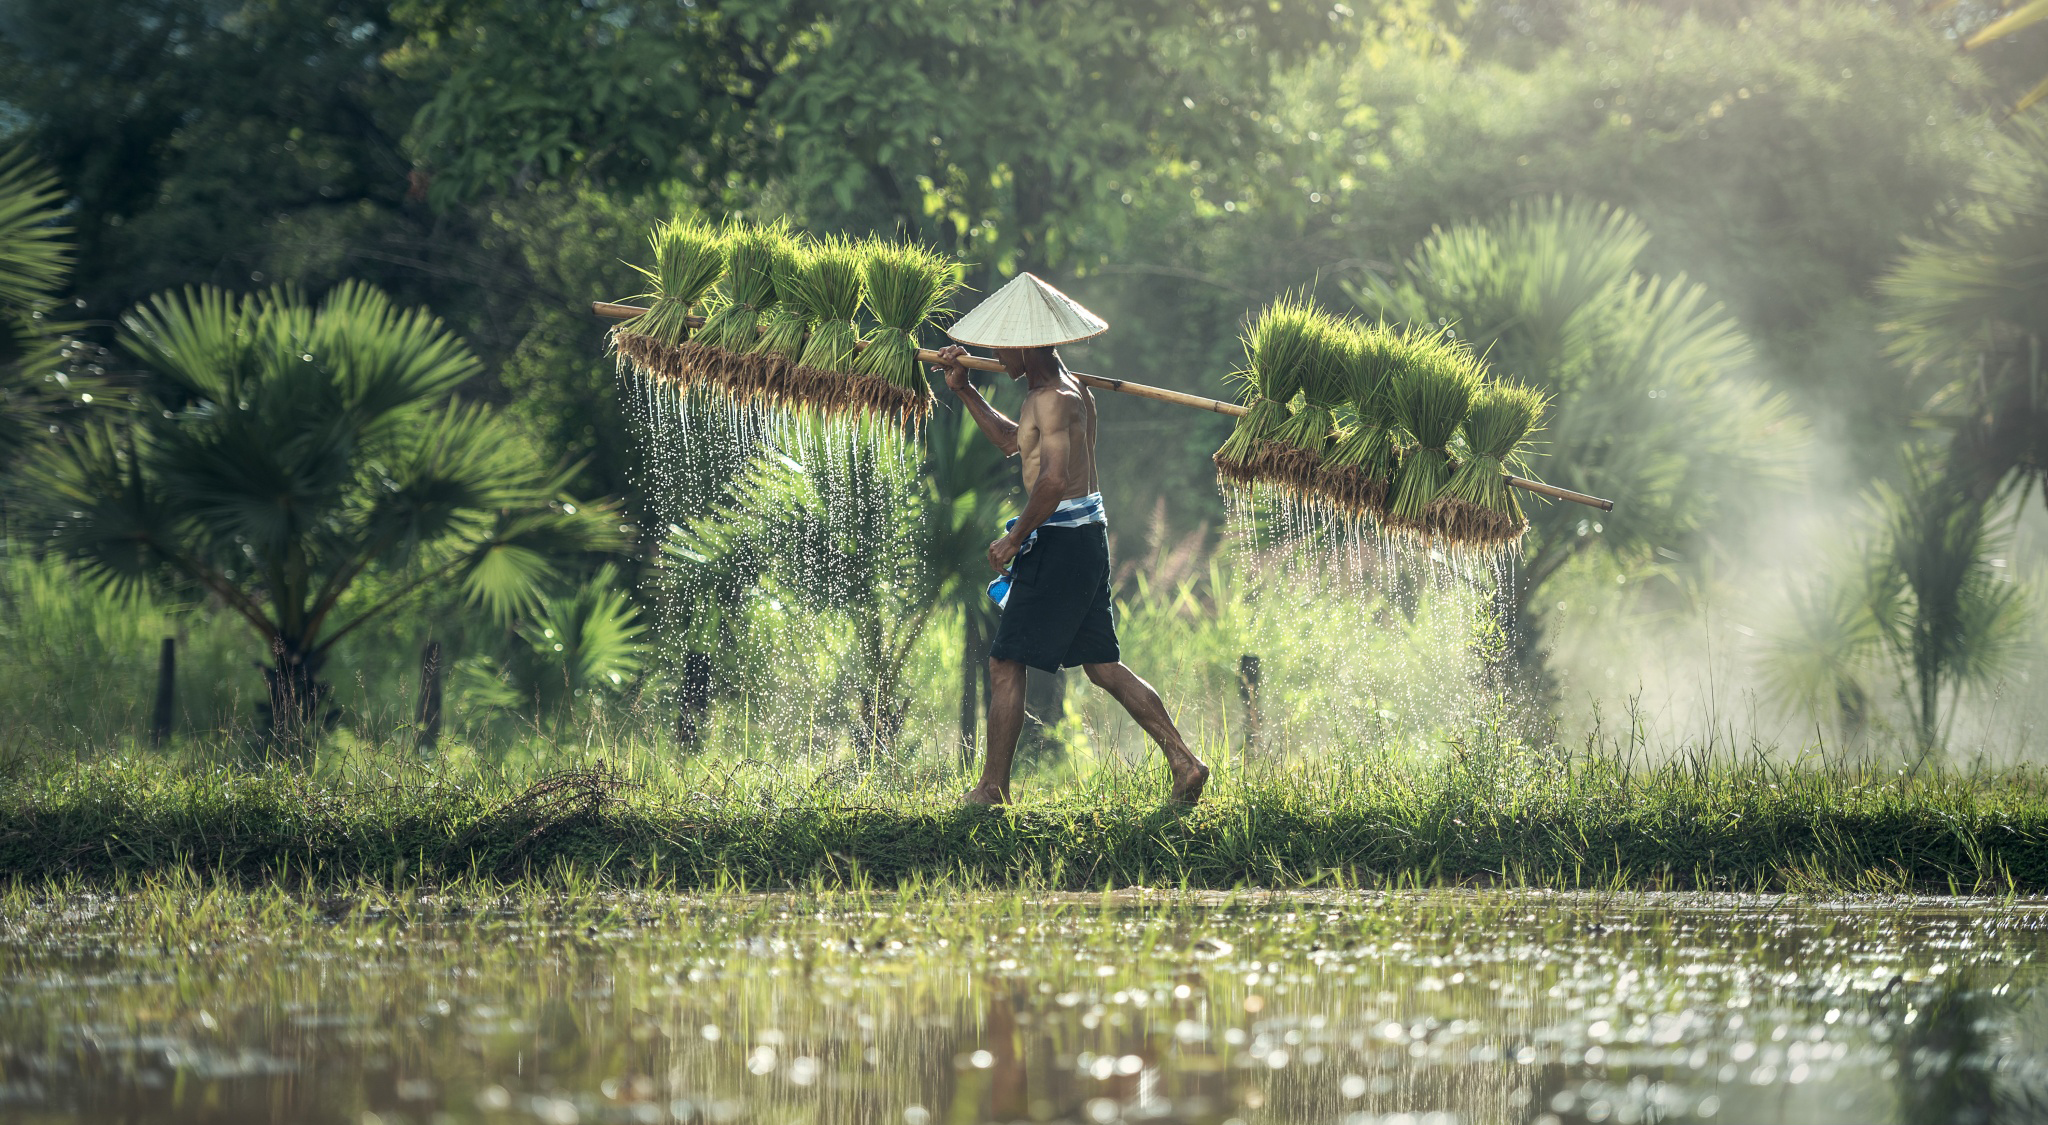 Carrying rice farmers 53707